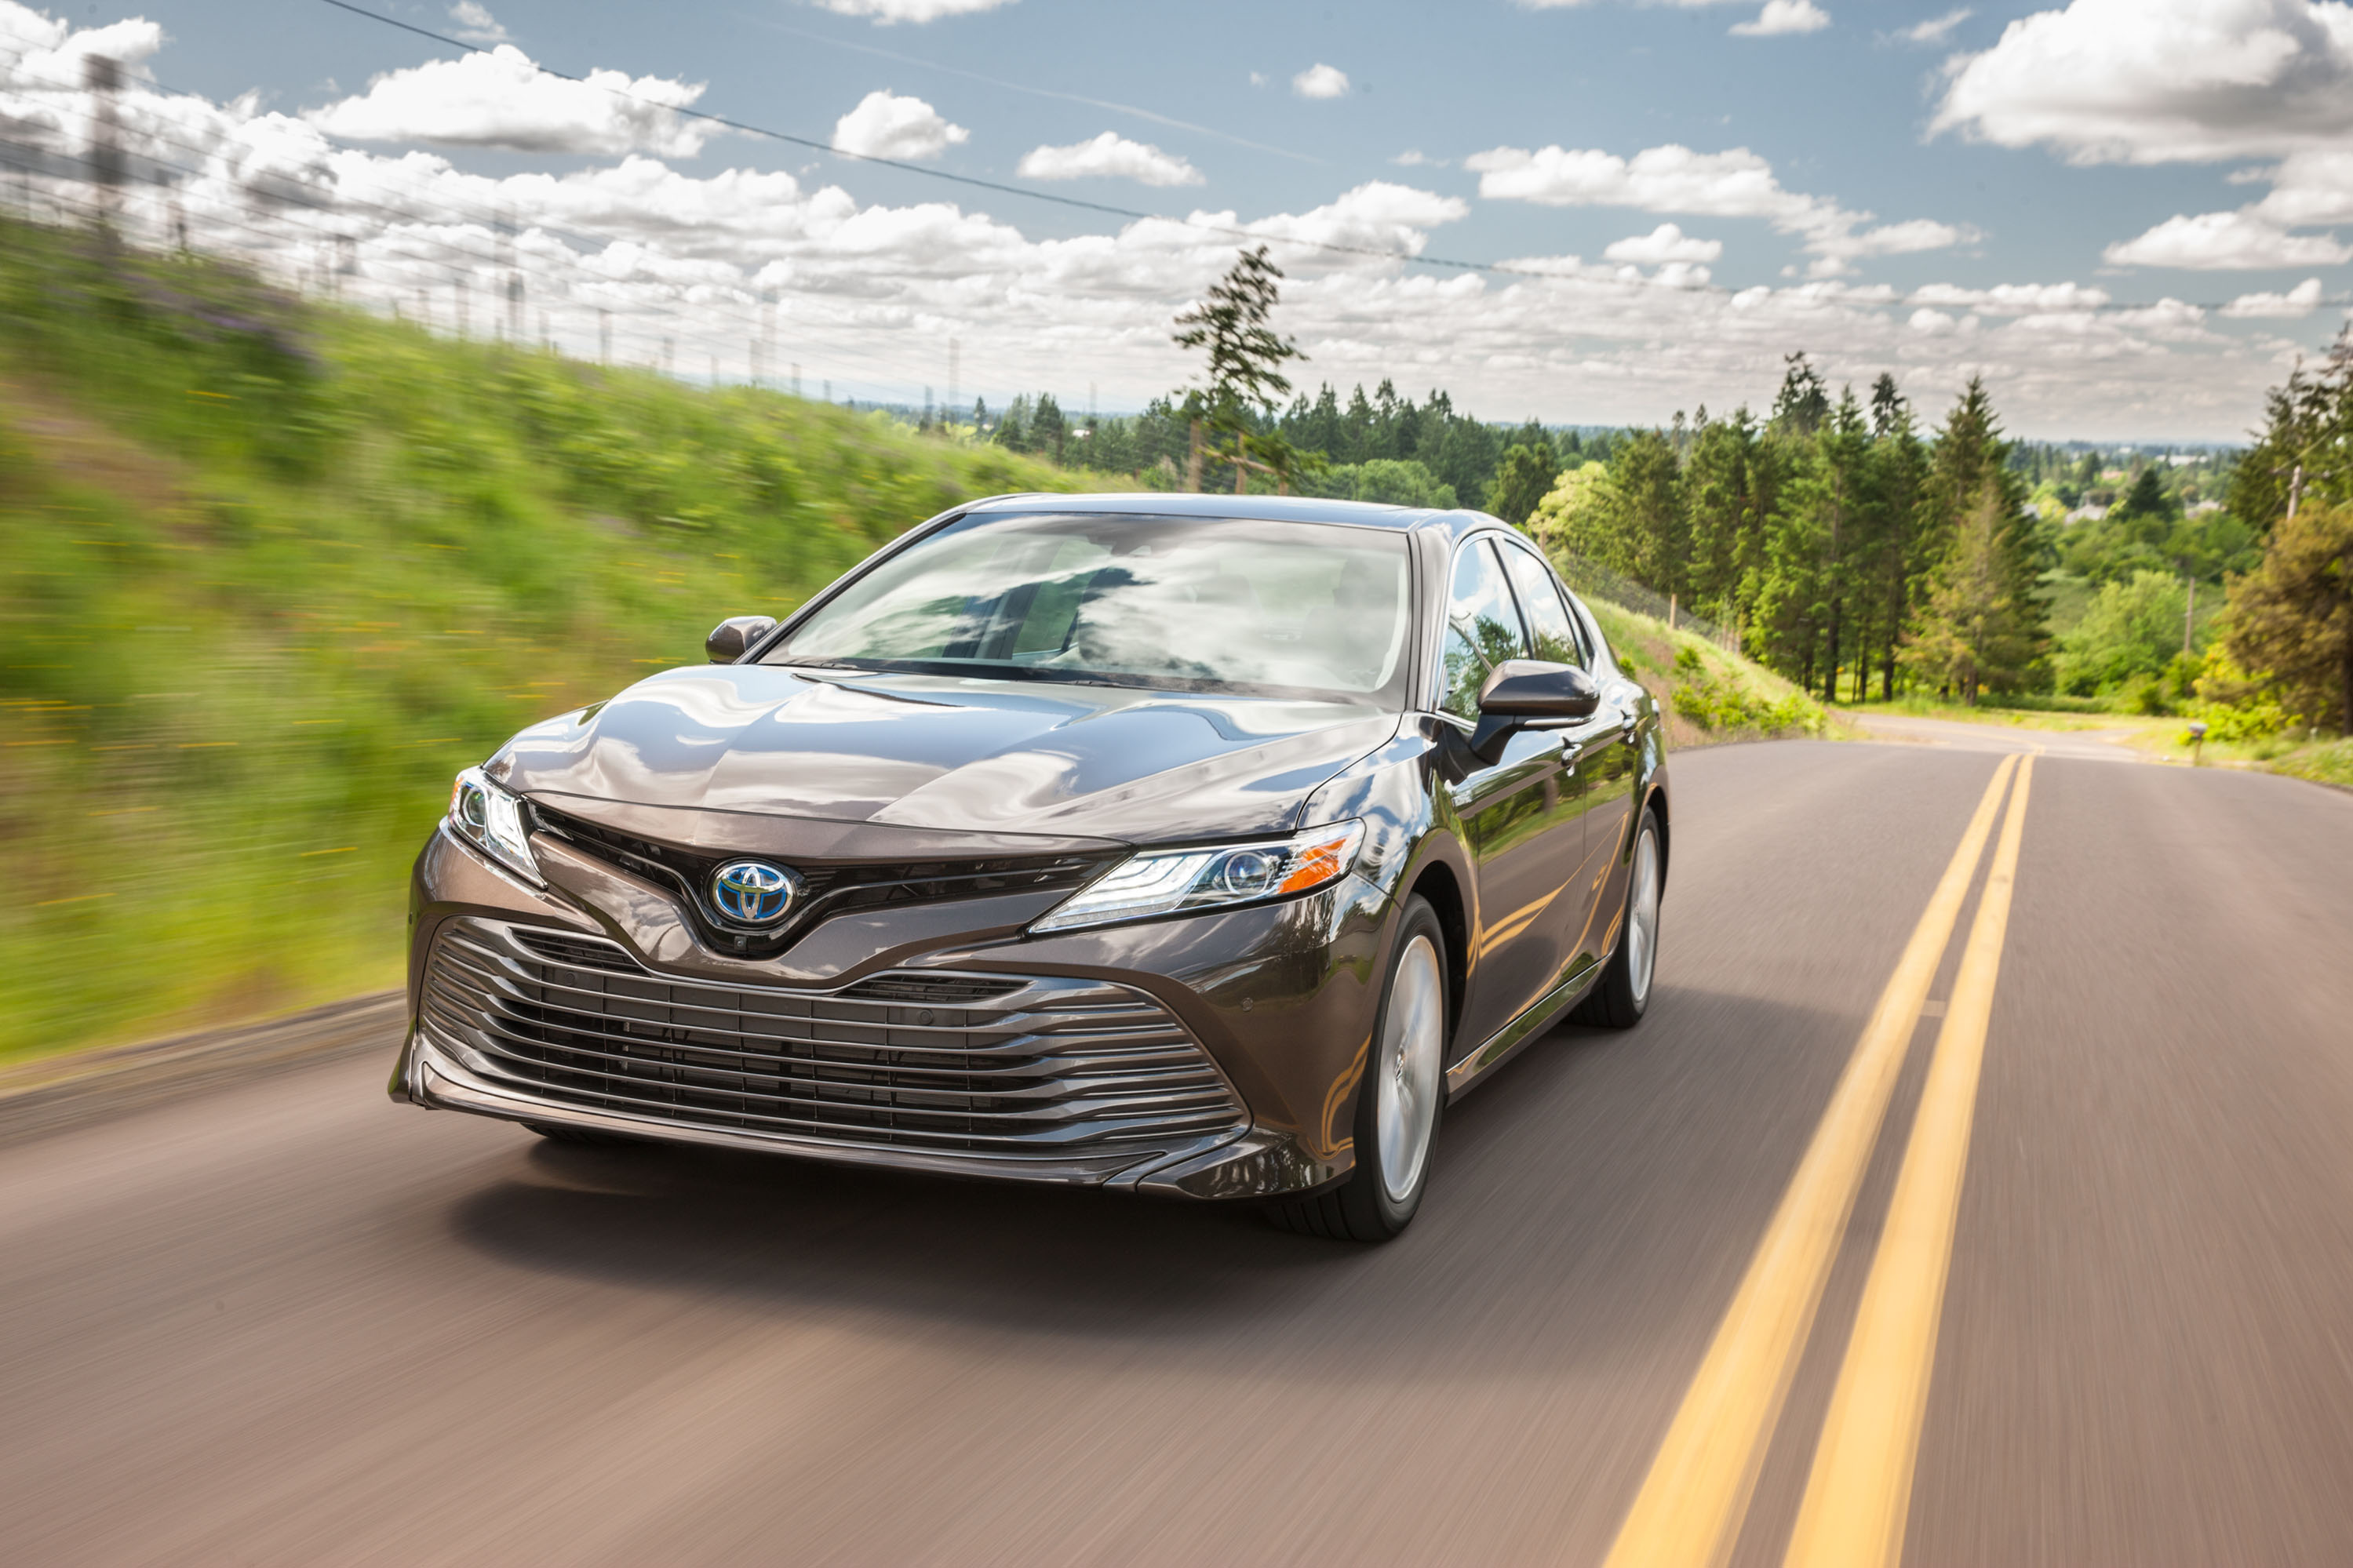 2018 Toyota Camry XLE Hybrid road-trip review: a case for ...